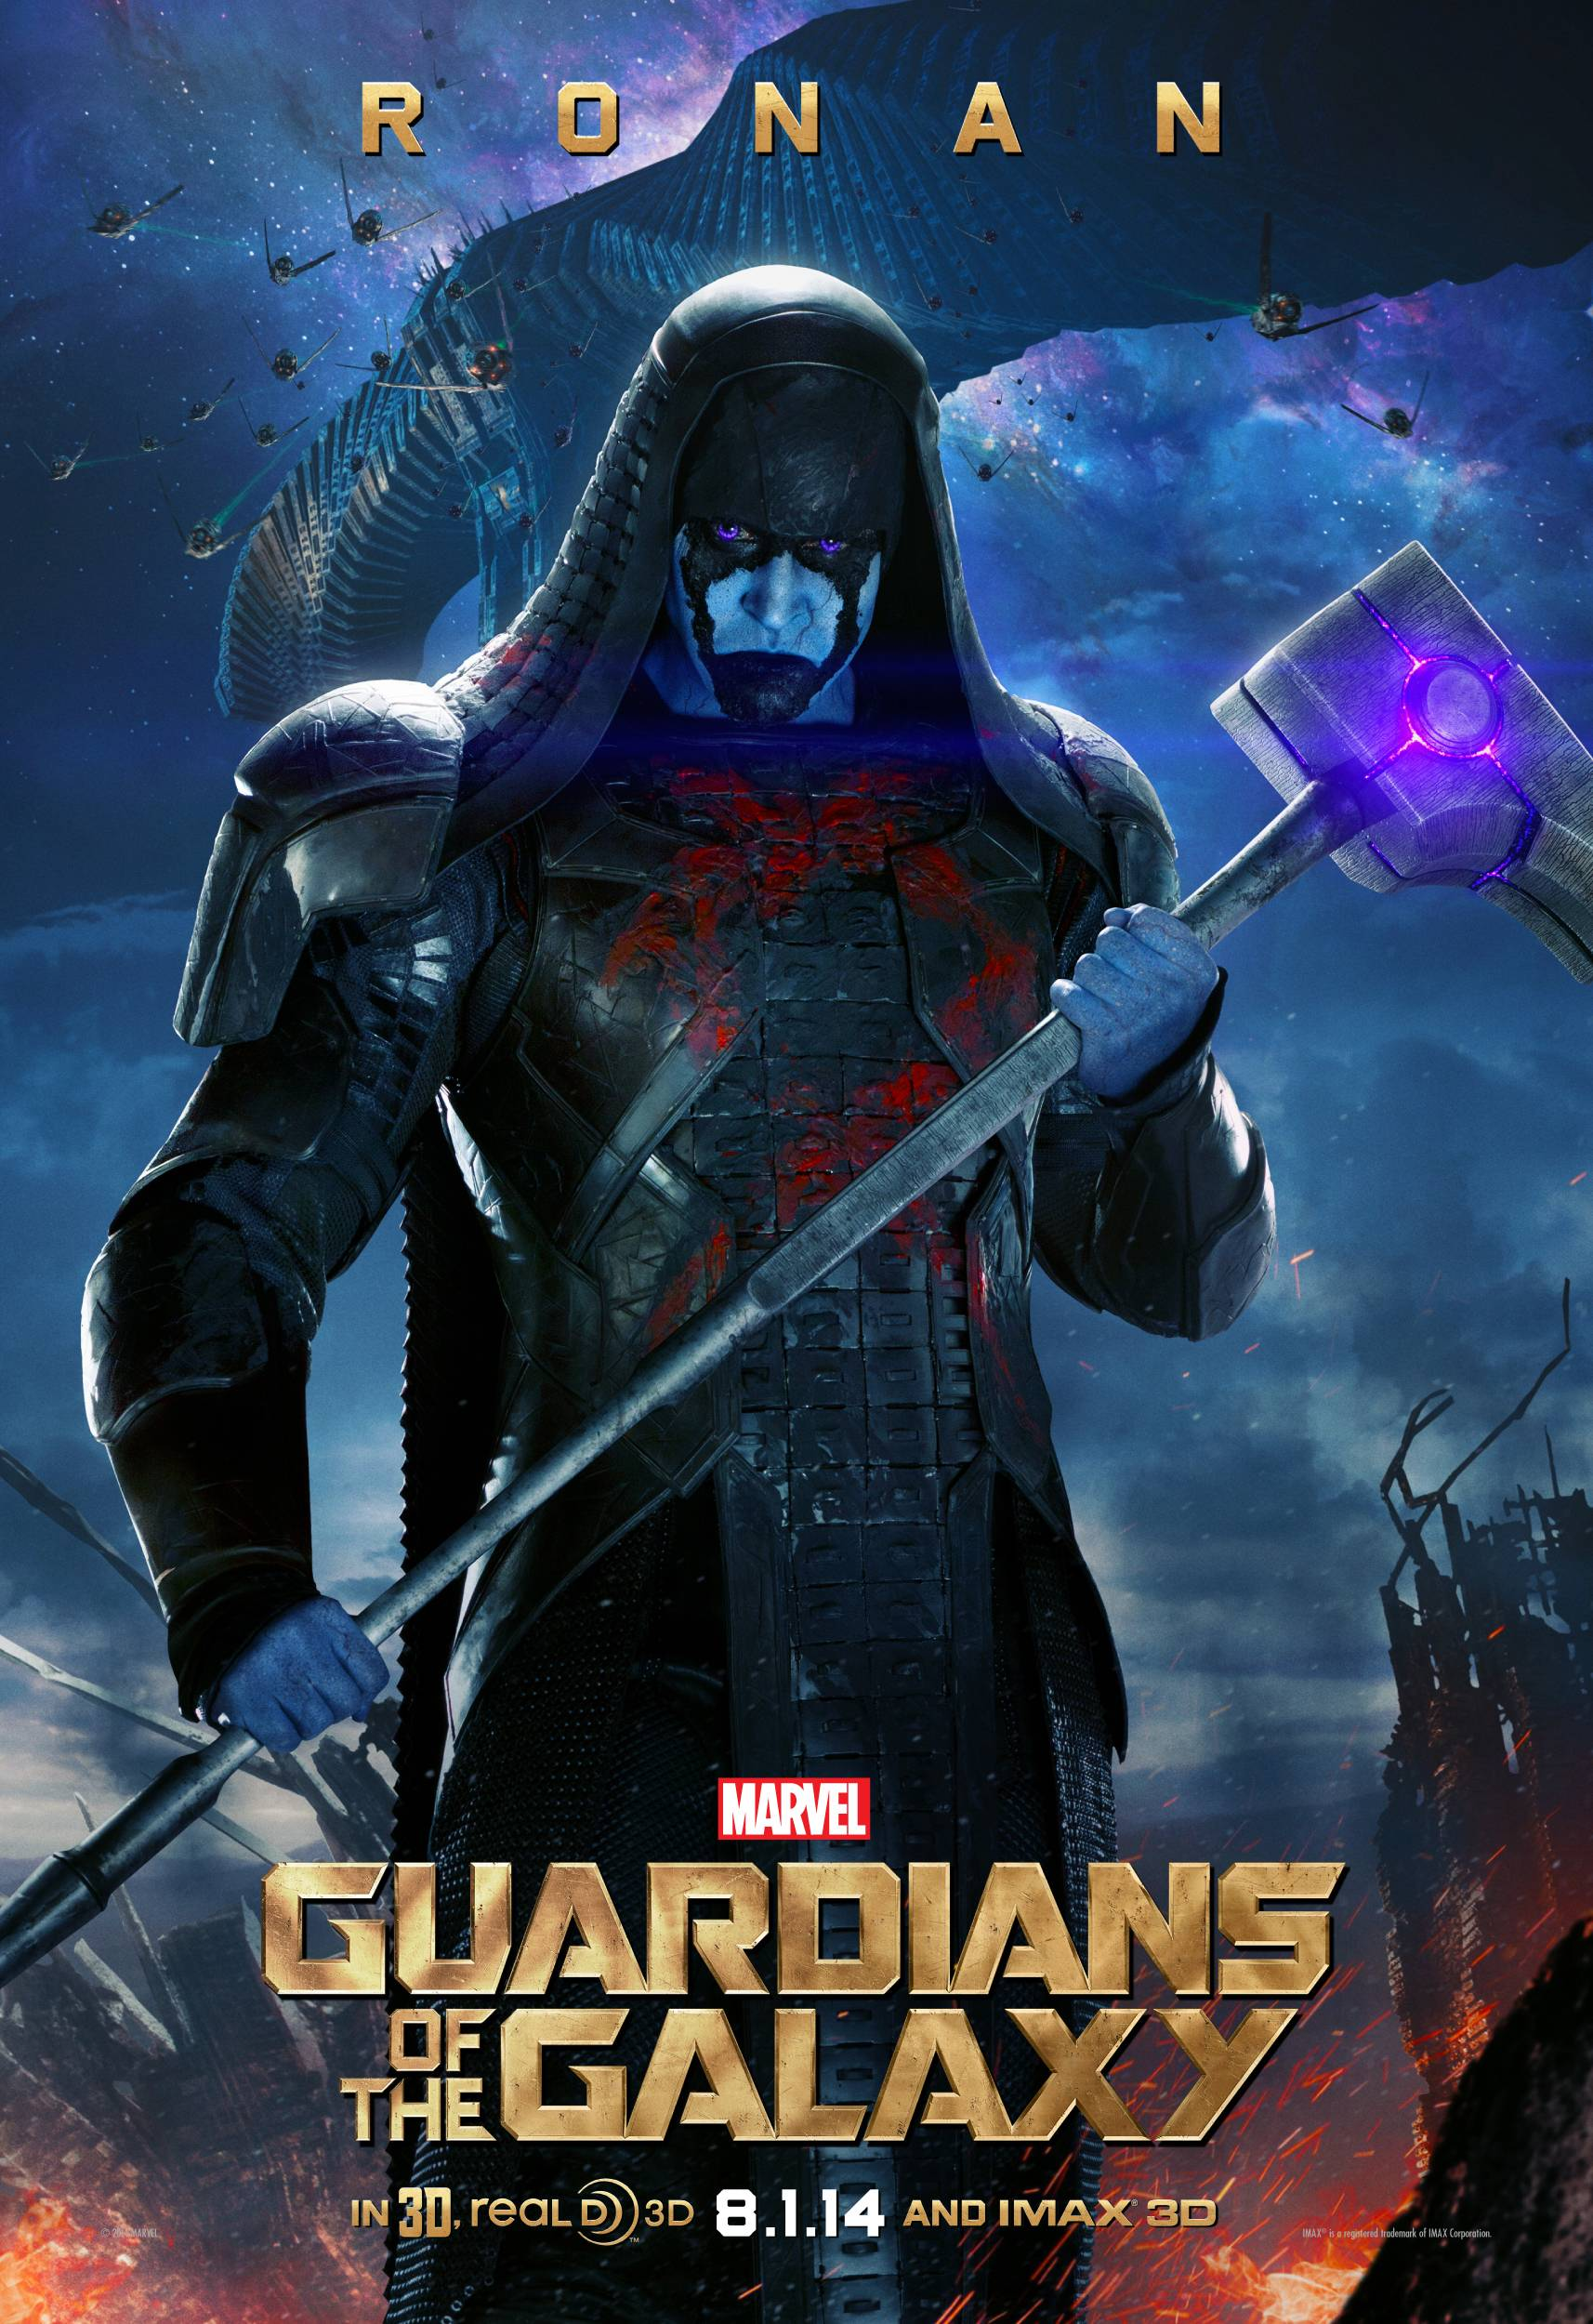 Ronan From Guardians Of The Galaxy Wallpaper